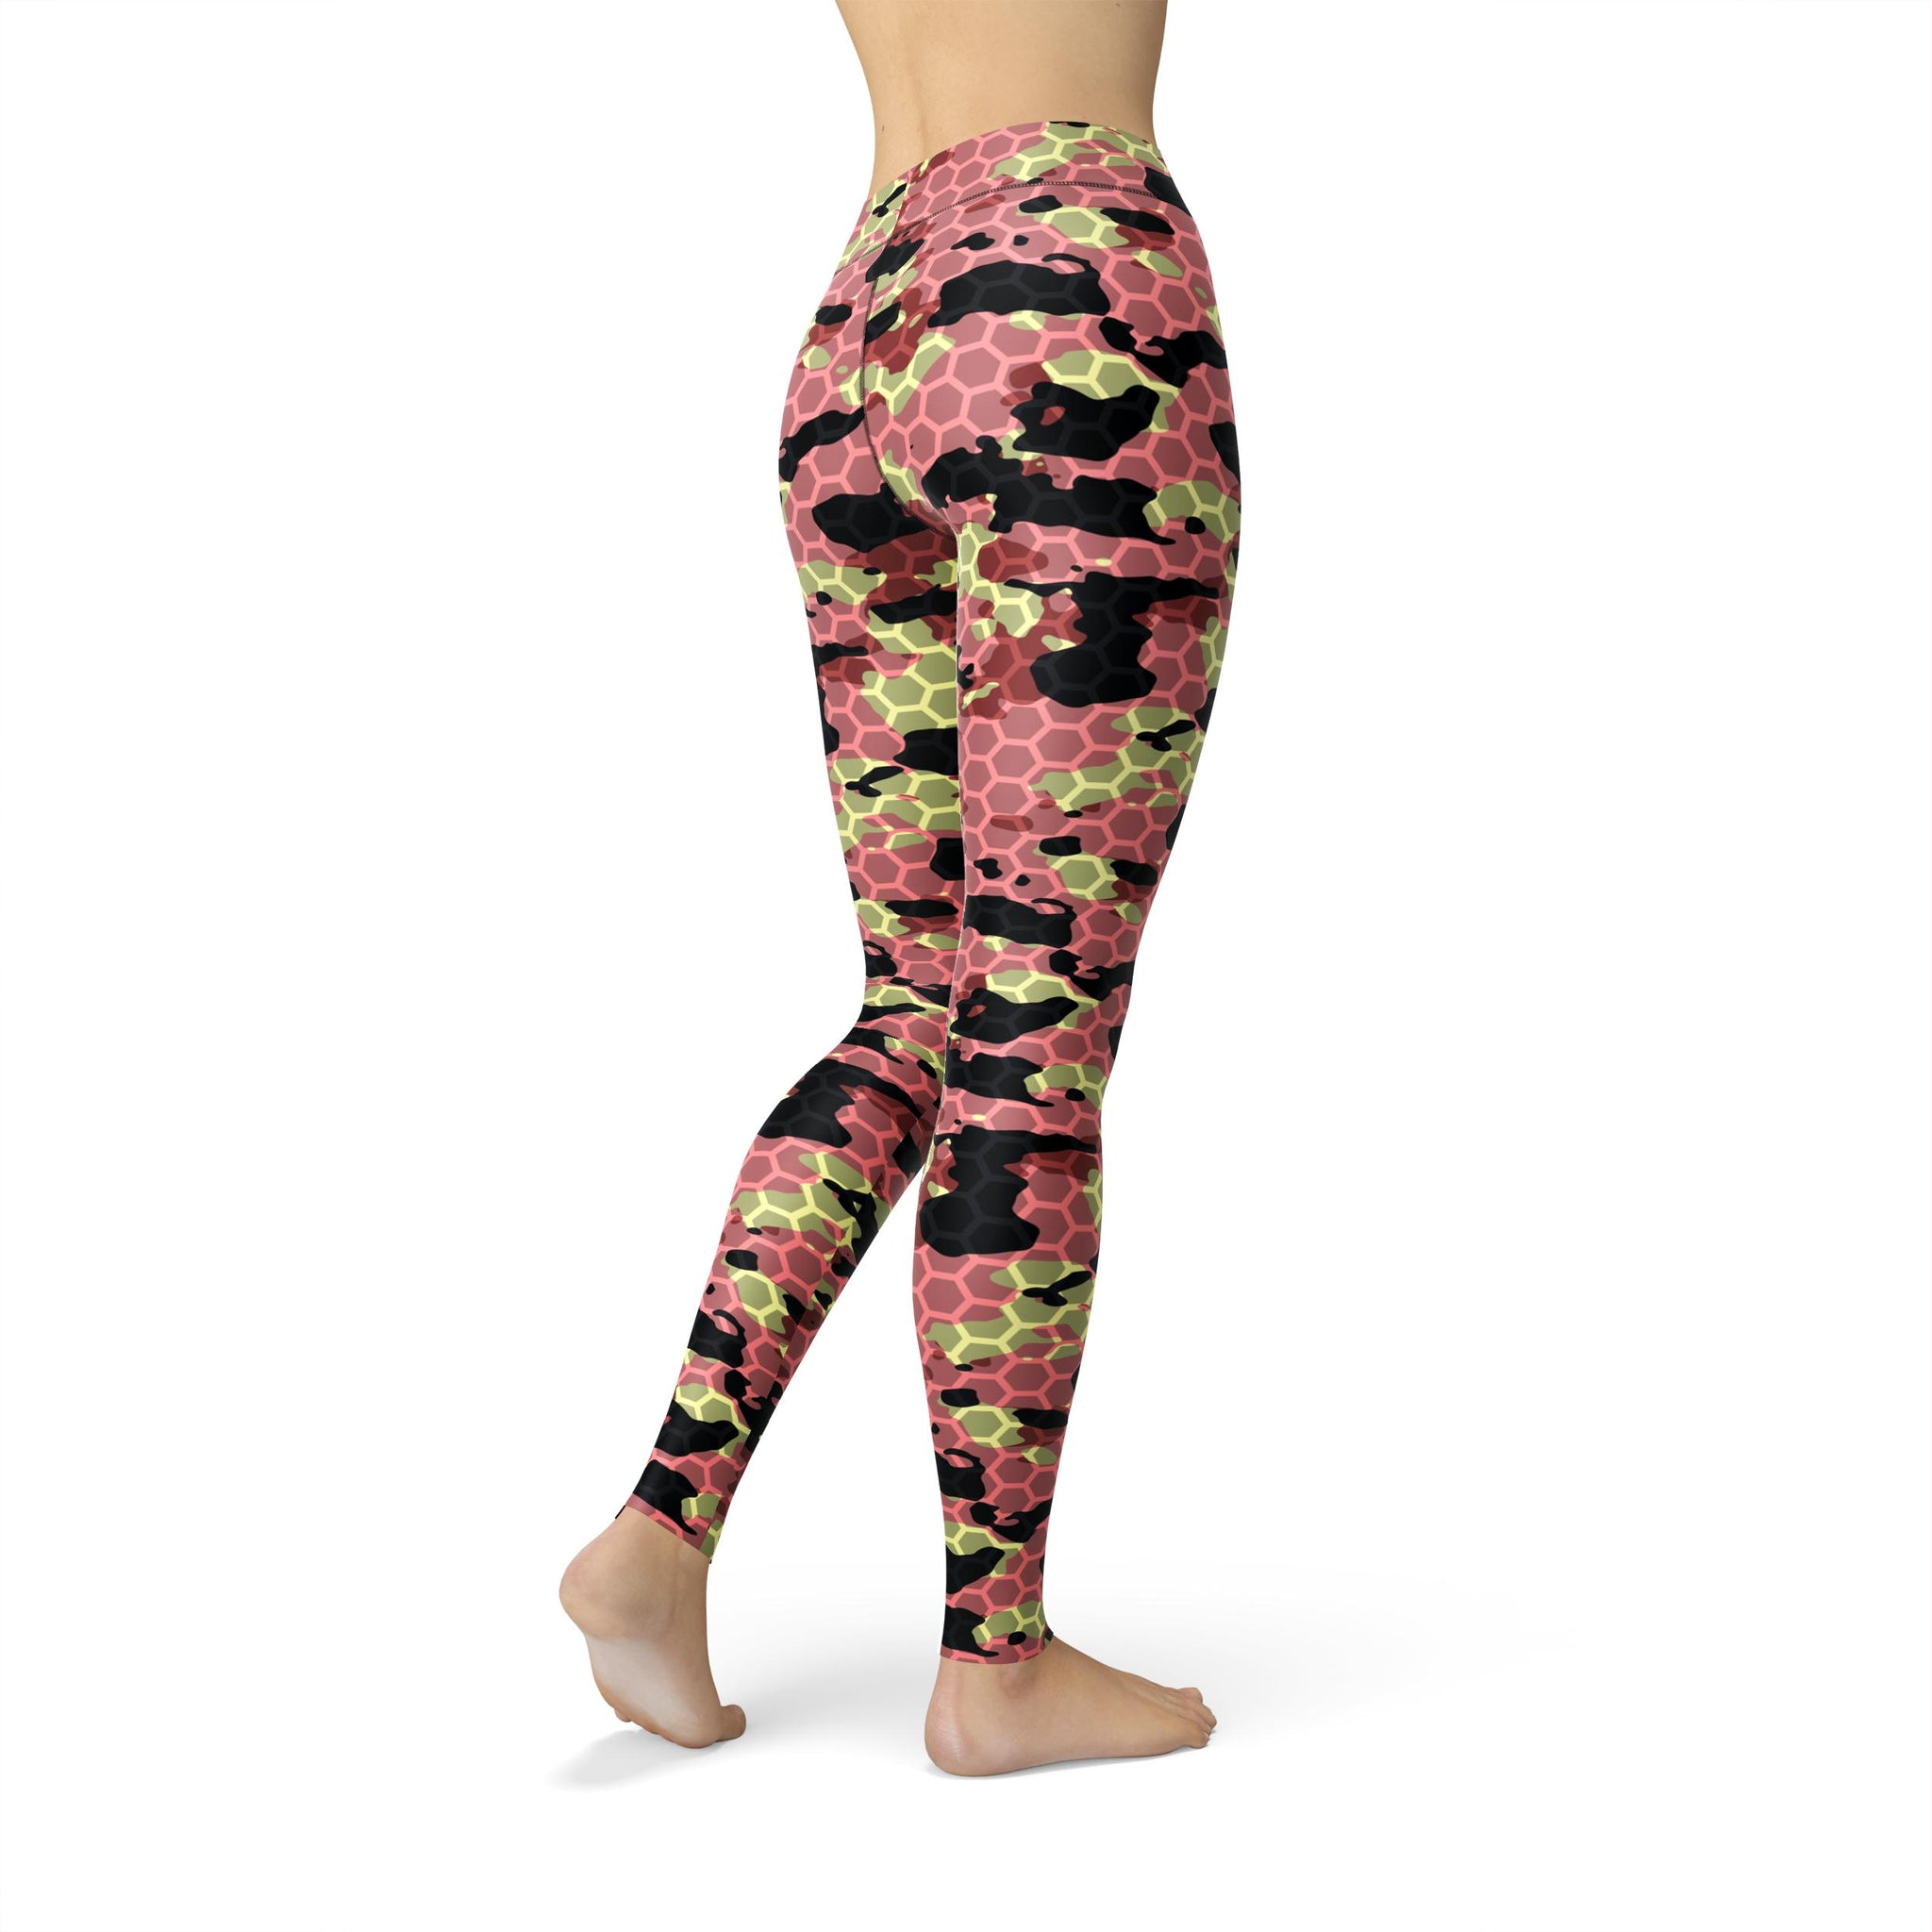 Gentle High-Waist Watermelon Rush Camouflage Legging